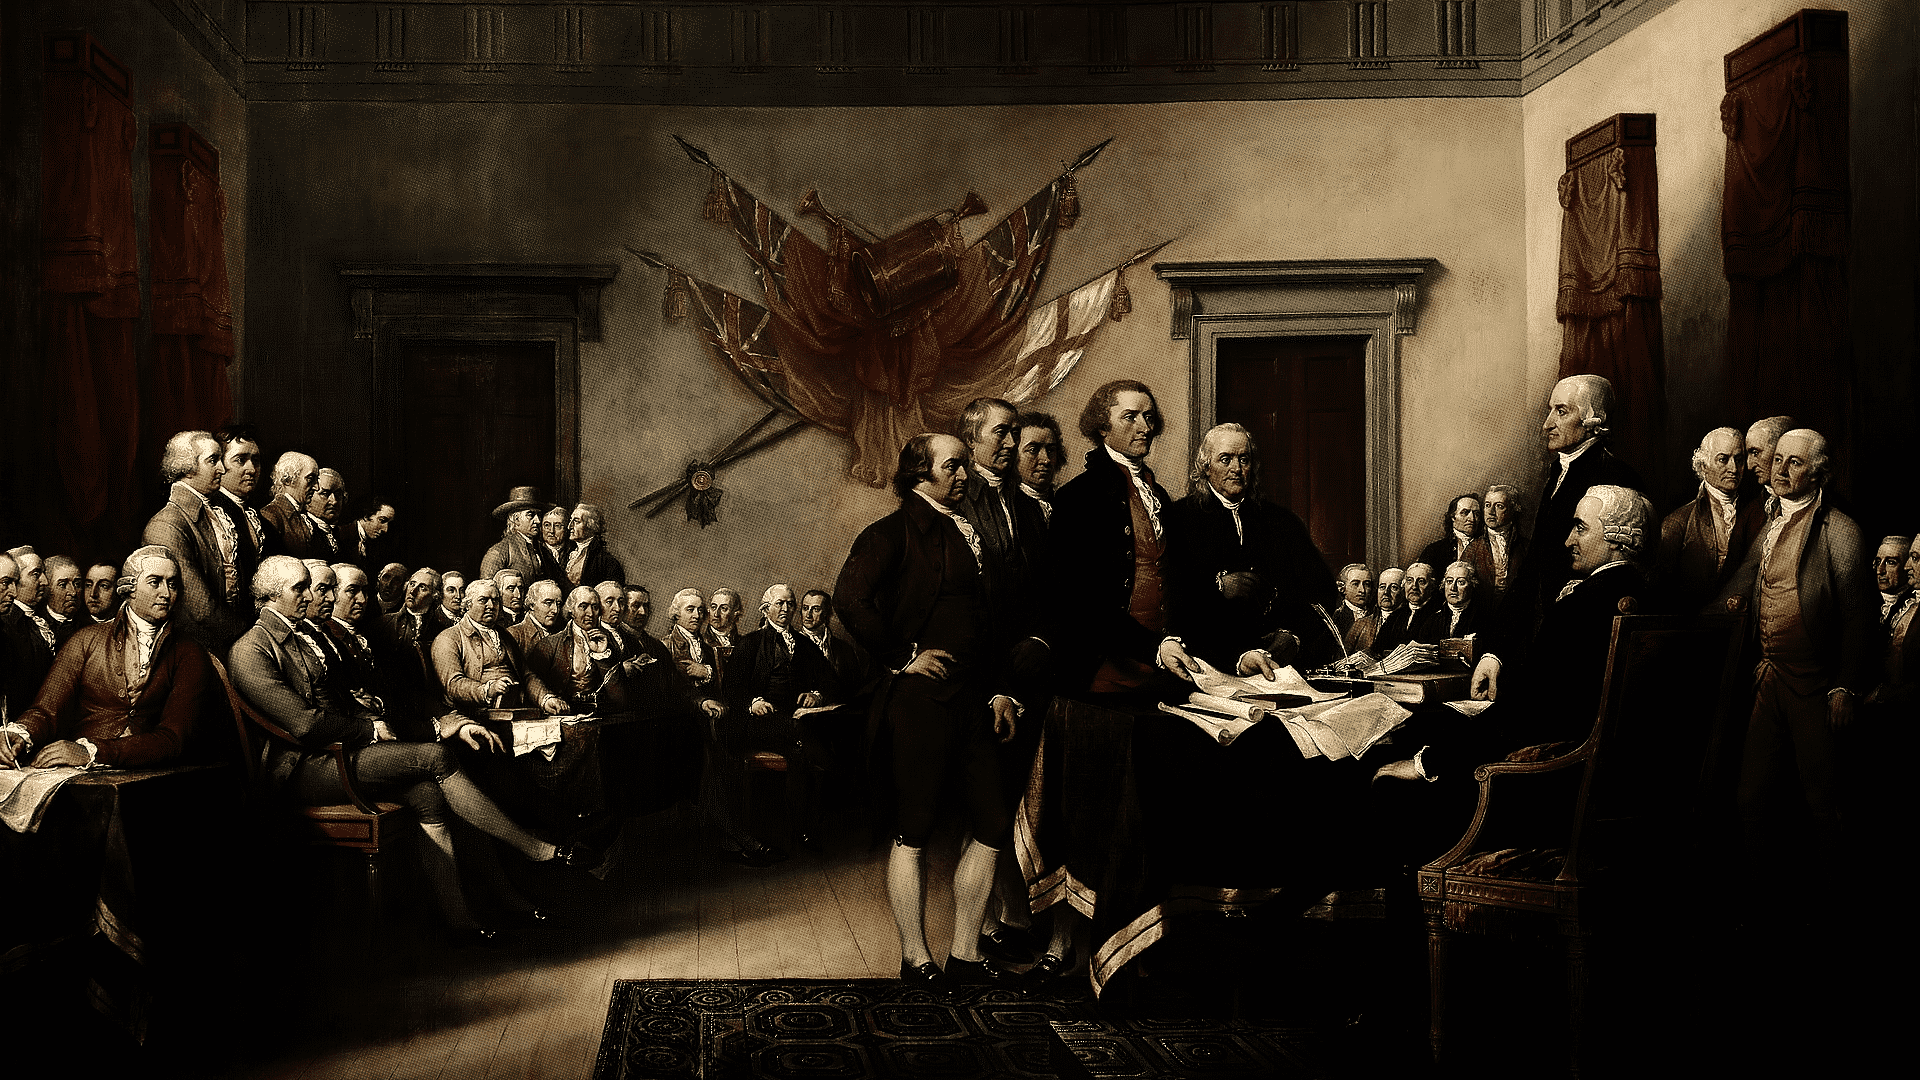 John Trumbull's painting, Declaration of Independence, depicting the five-man drafting committee of the Declaration of Independence presenting their work to the Congress.